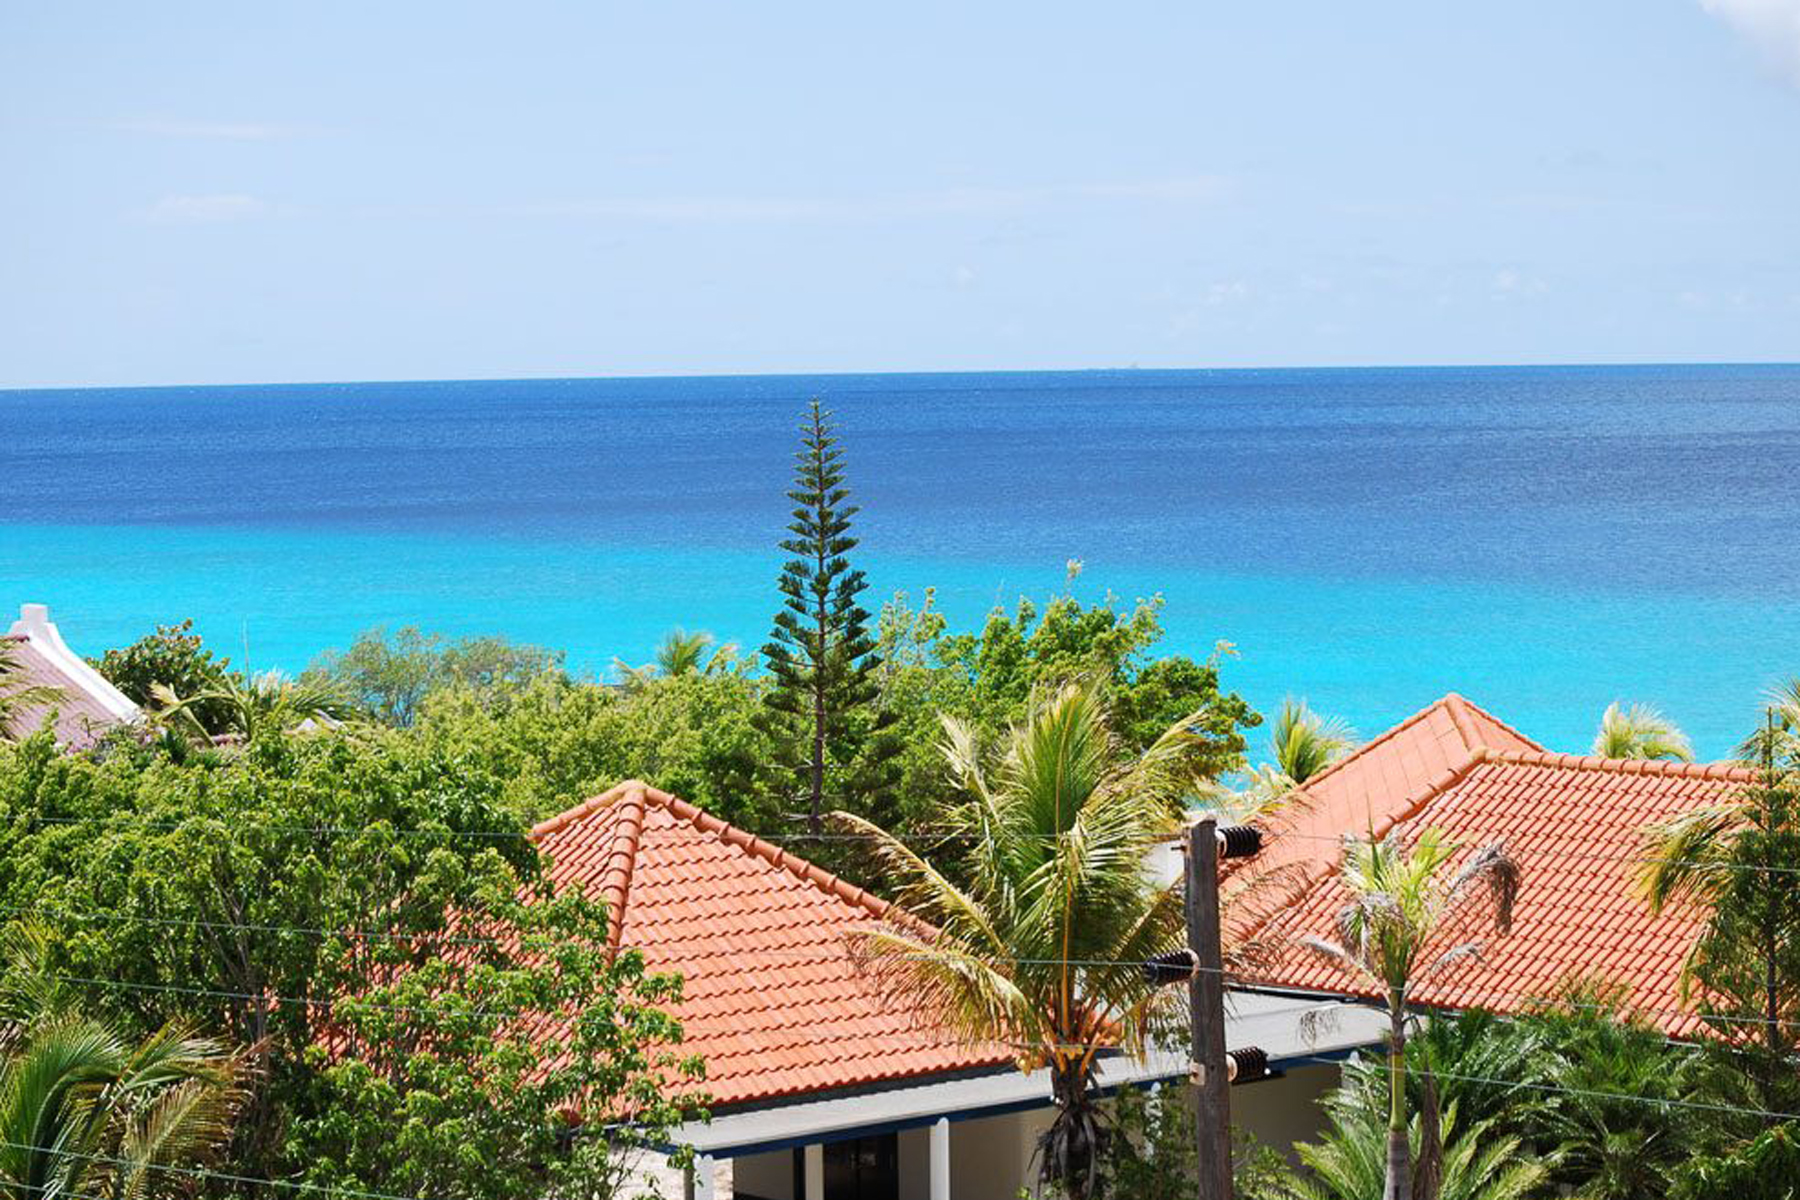 Single Family Home for Sale at Penthouse Zeezicht Punt Vierkant, Bonaire